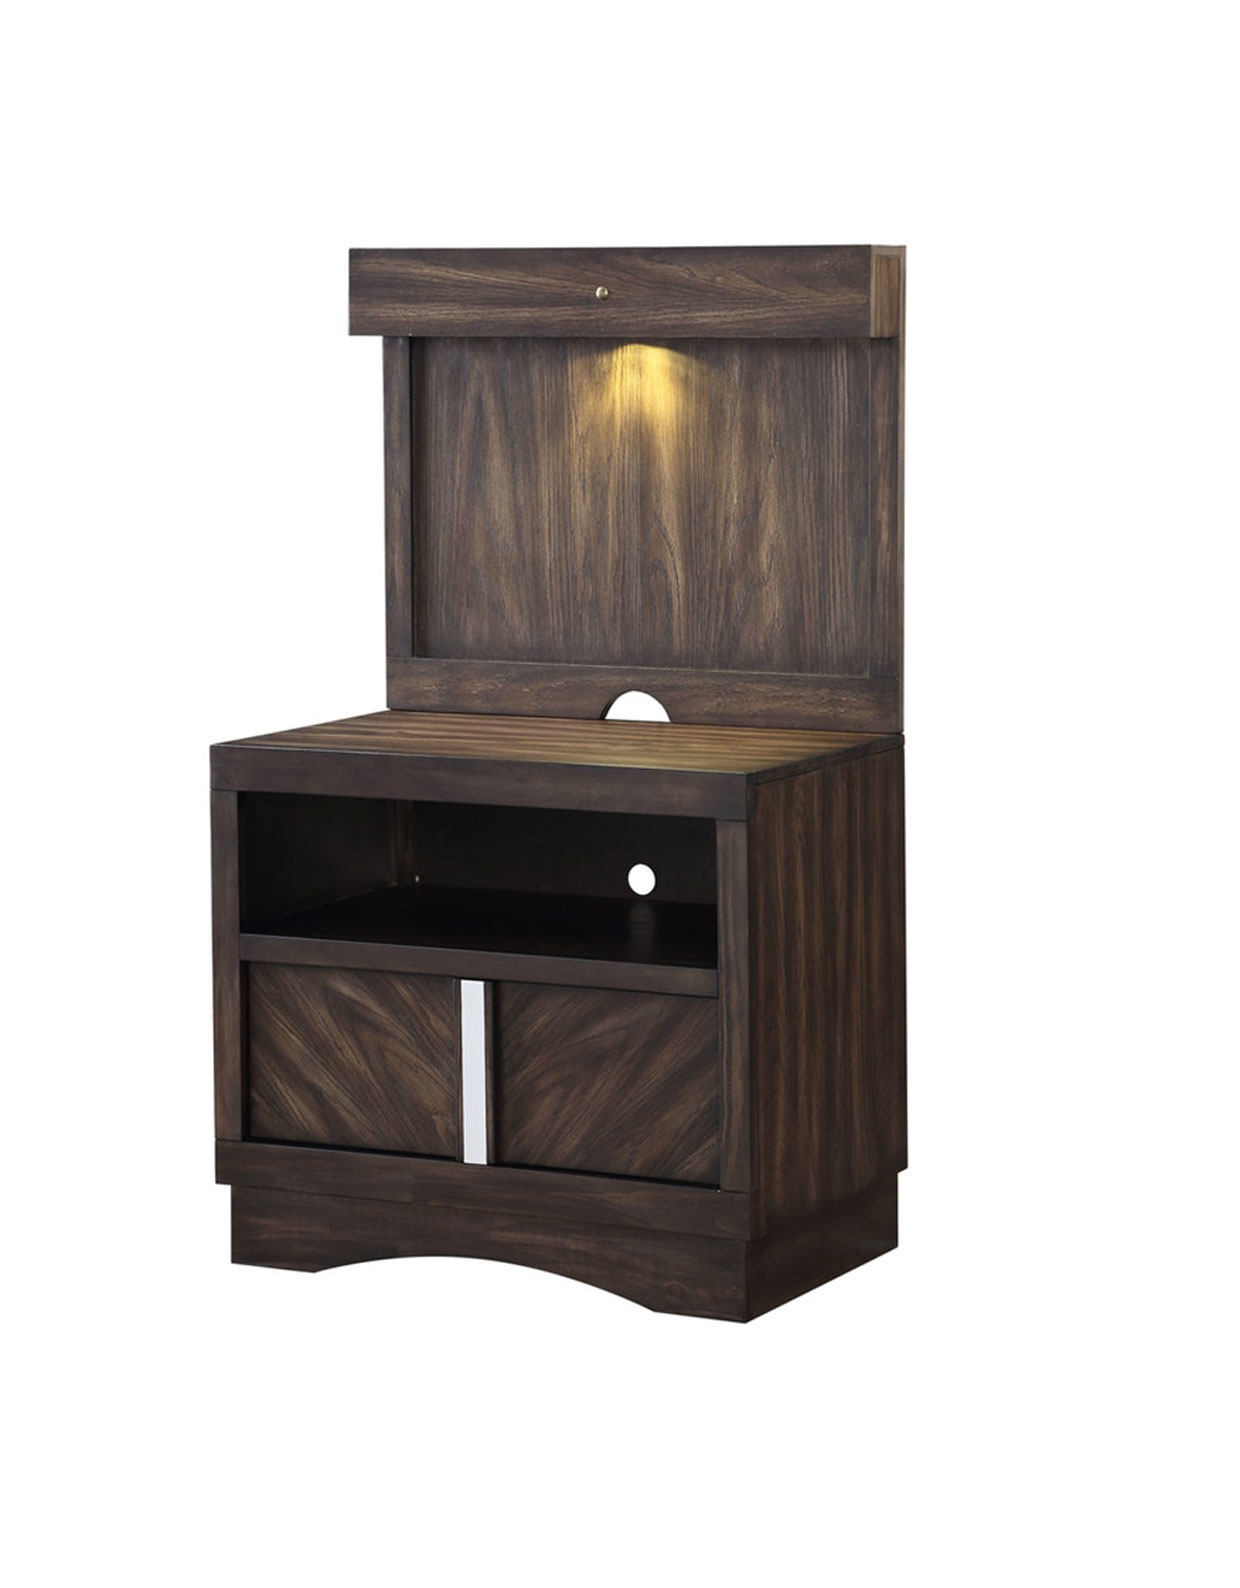 Manhattan Queen Wall Bed with Lights - Nightstand